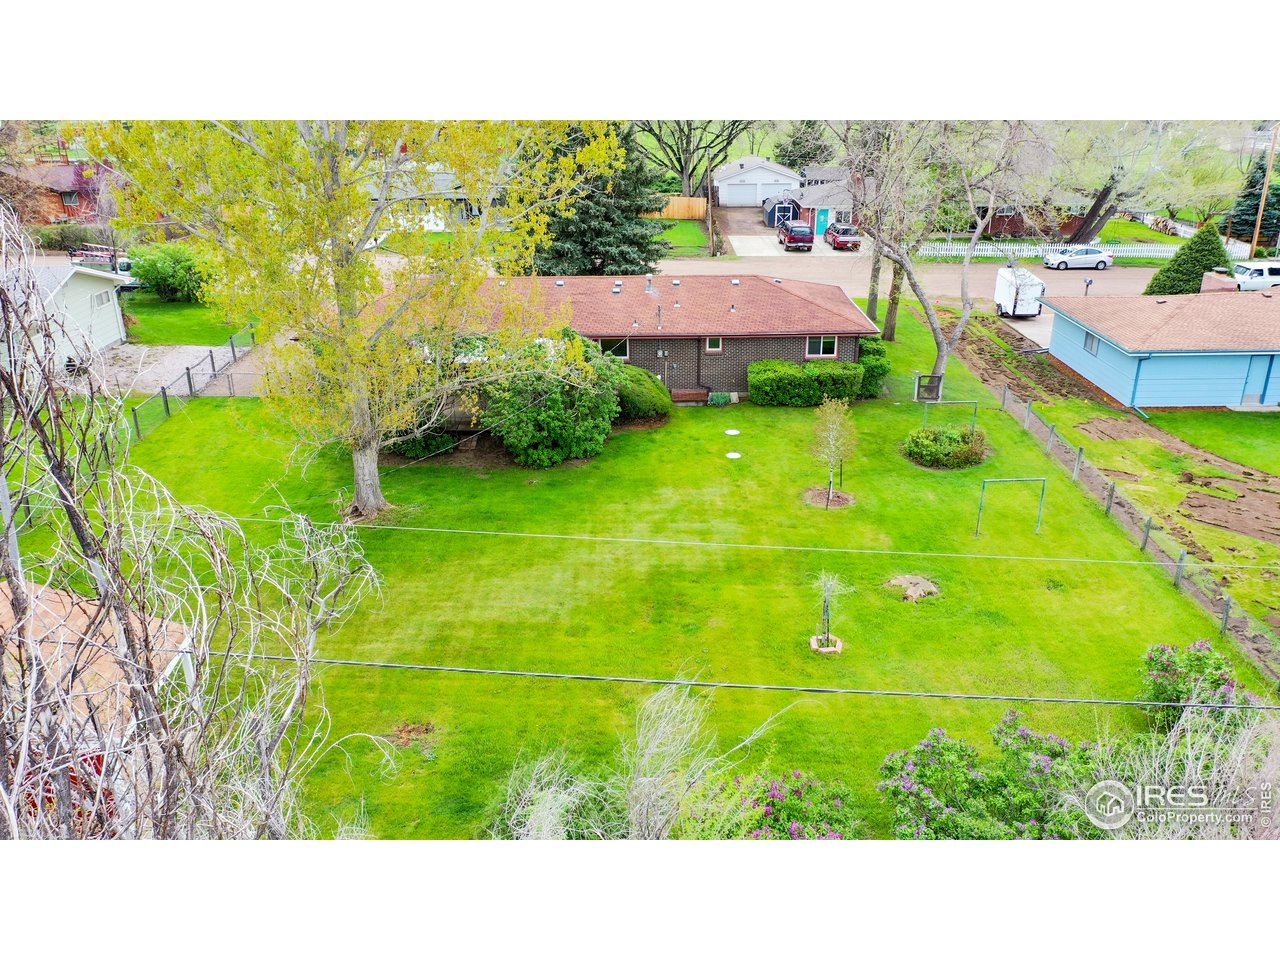 Overhead view of 1/3 acre lot